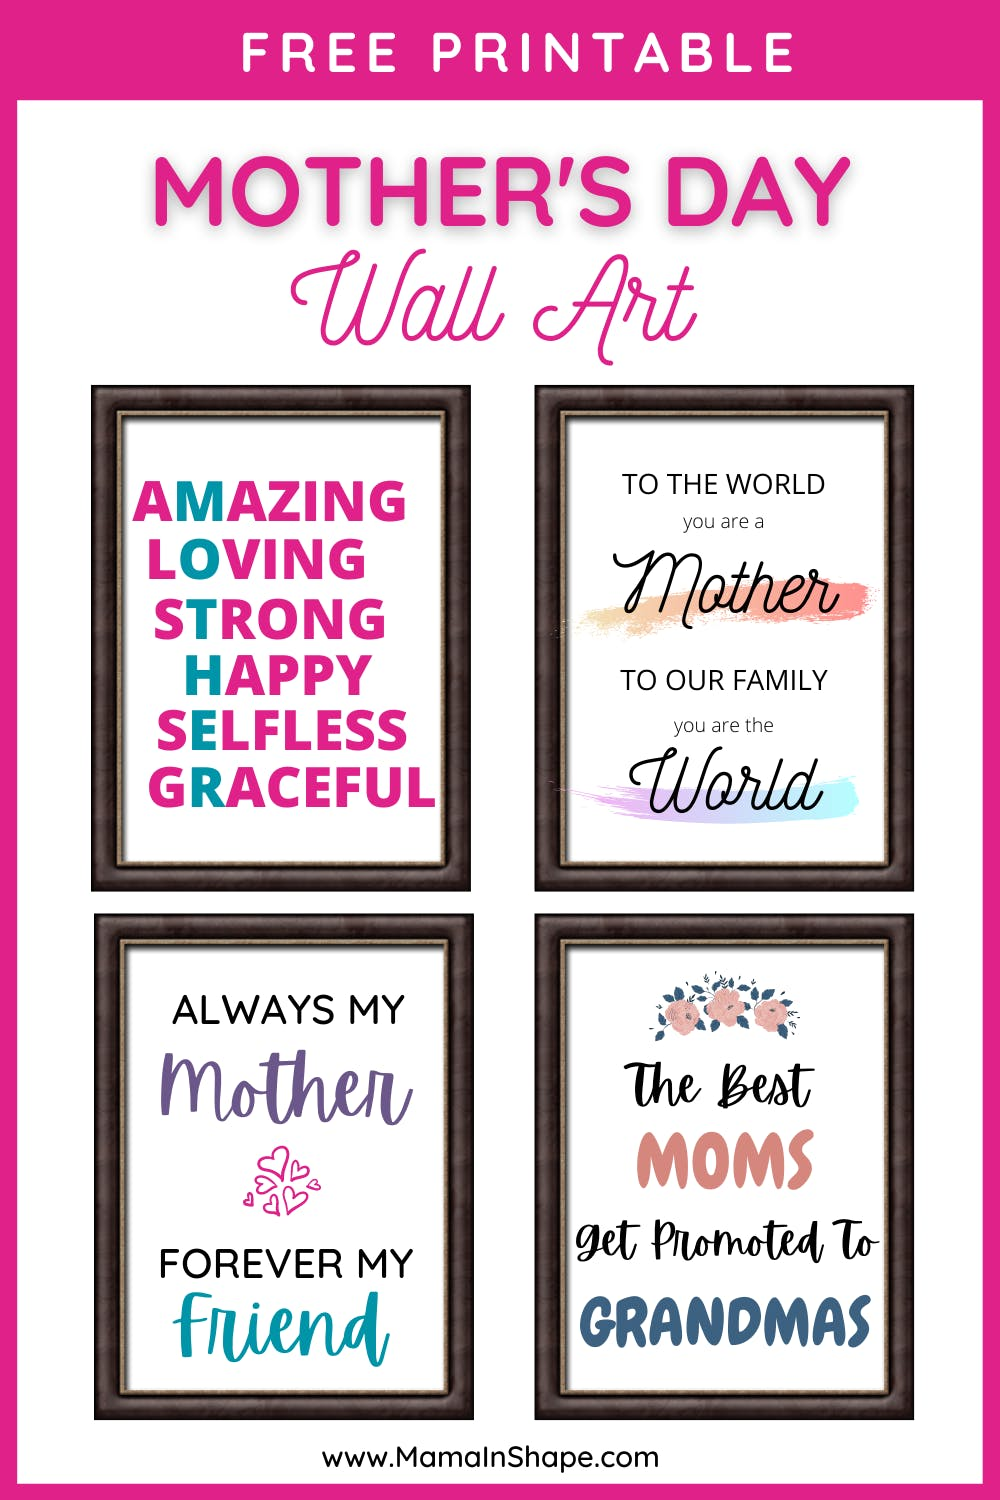 Mother's Day Wall Art Free Printable